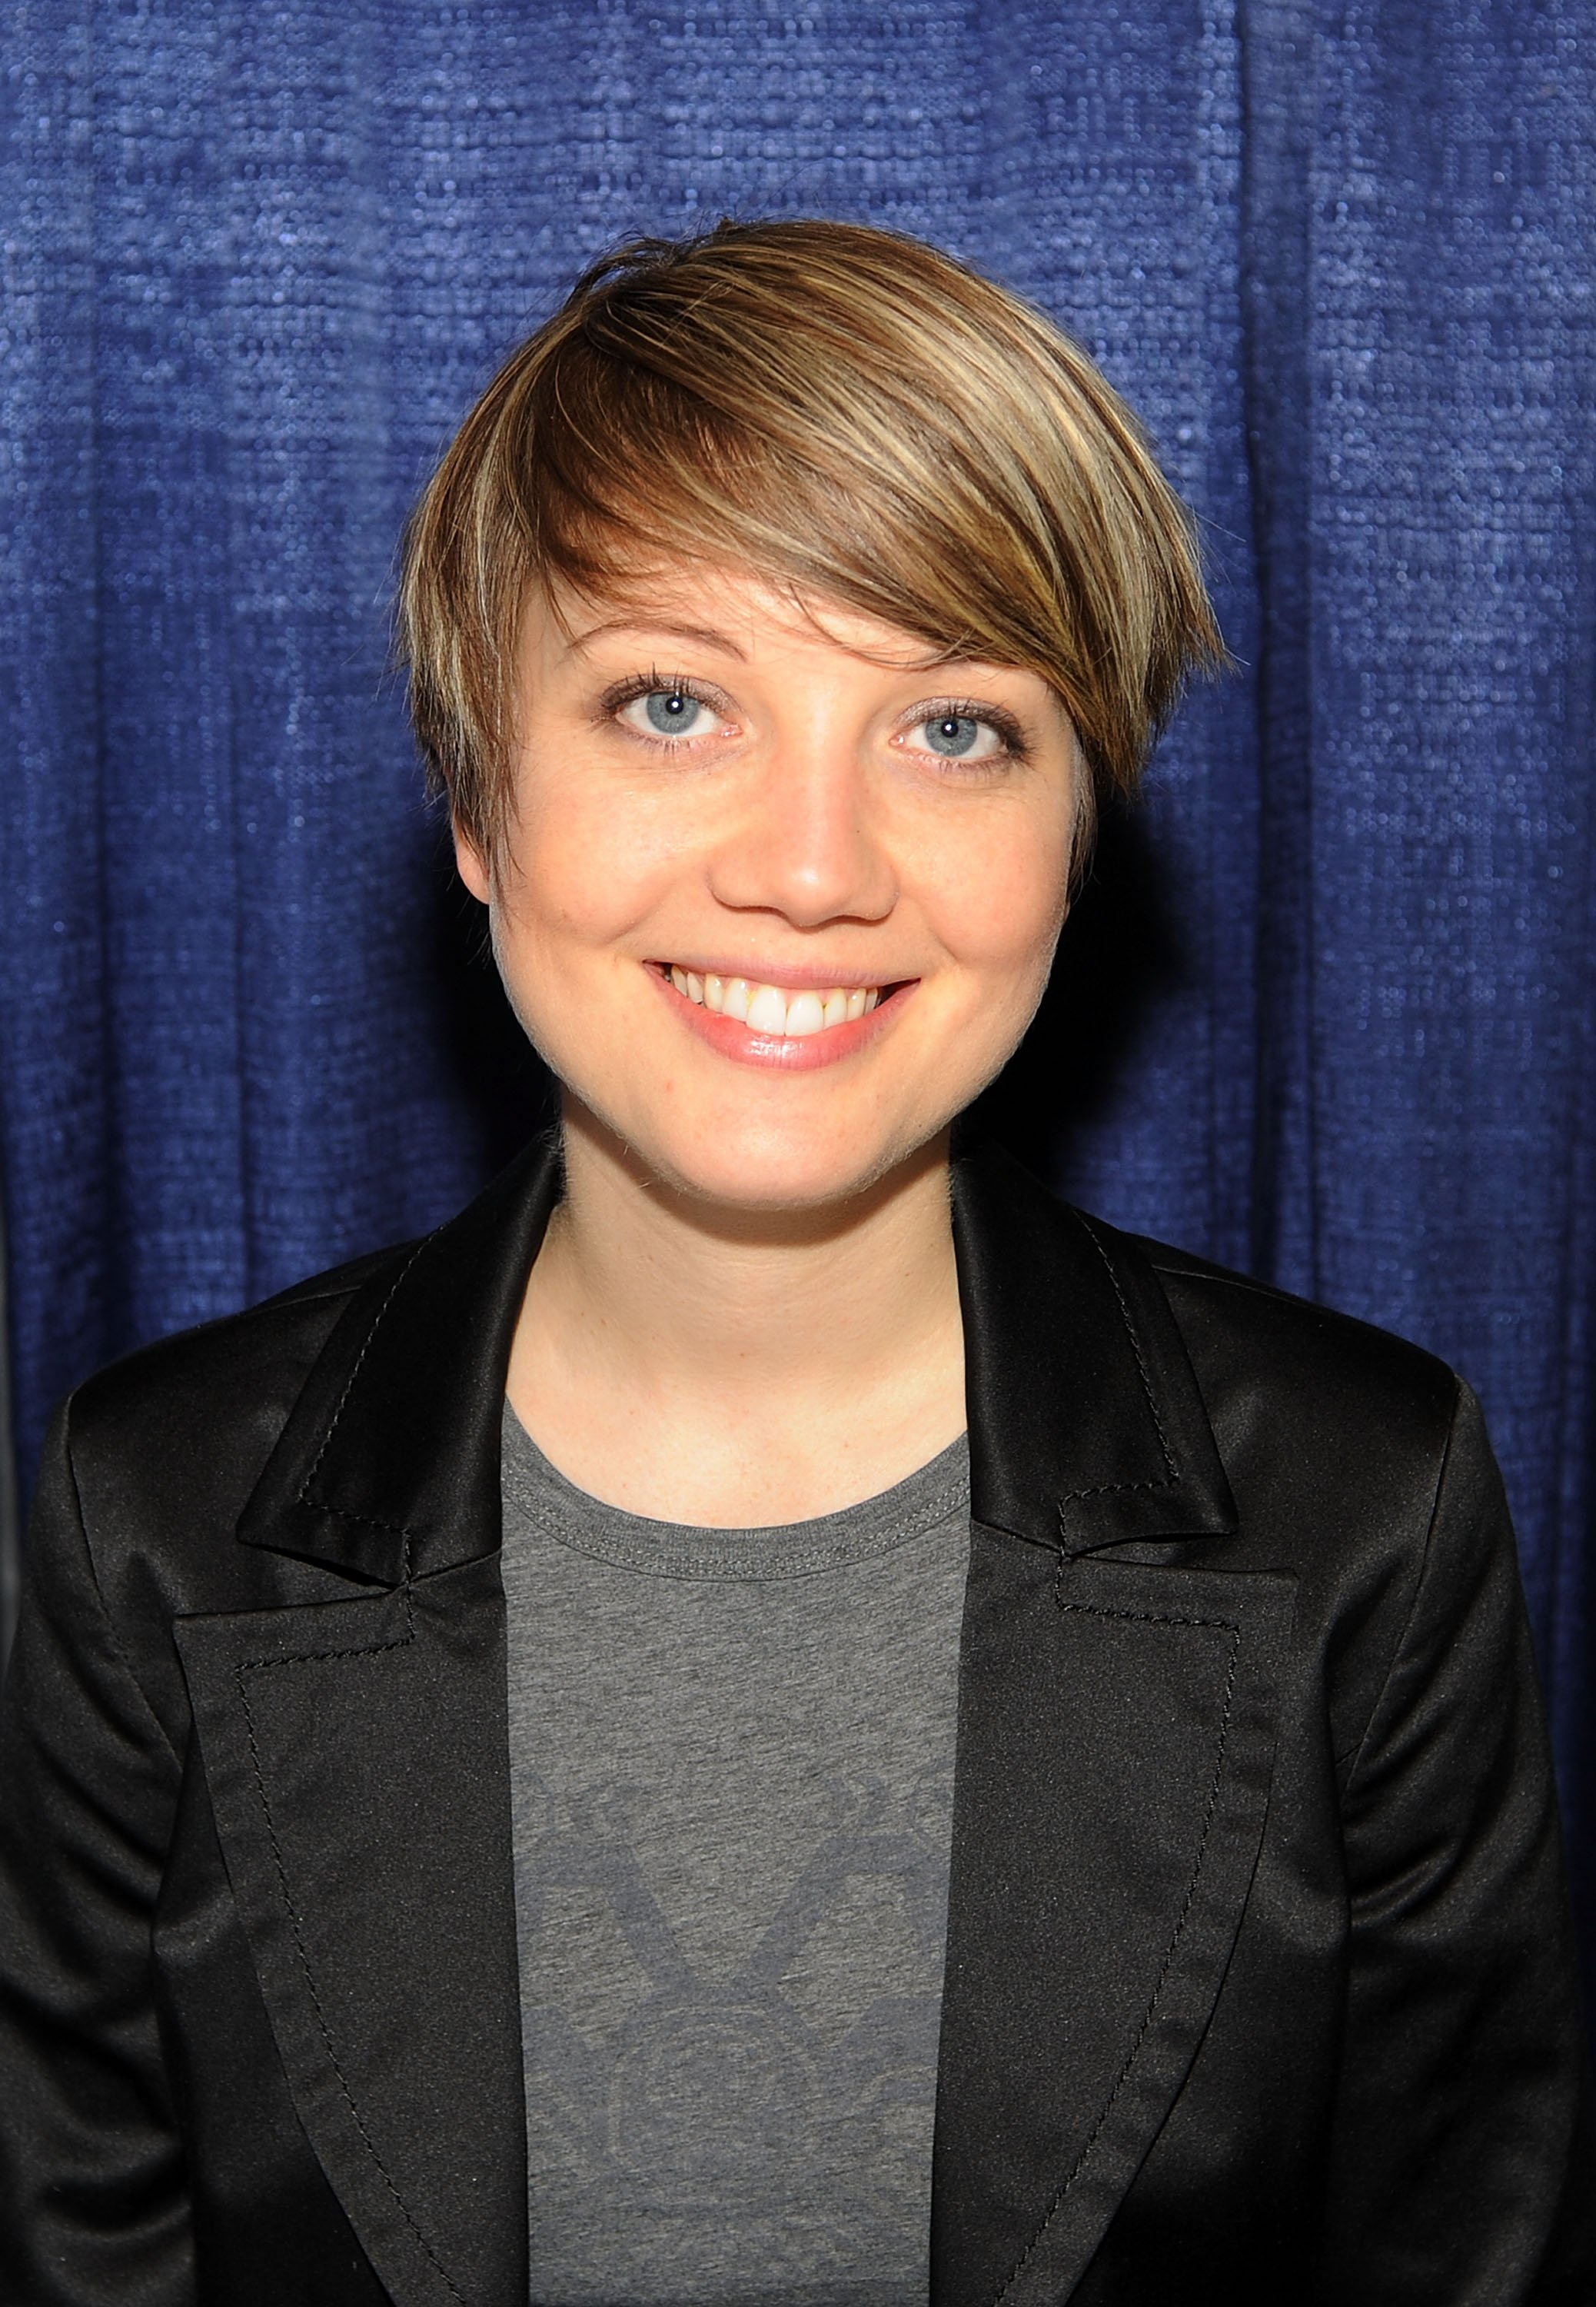 Nicki Clyne at the Rhode Island Comic Con held at the Rhode Island Convention Center on November 2, 2013, in Providence, Rhode Island   Photo: Getty Images/Bobby Bank/WireImage/